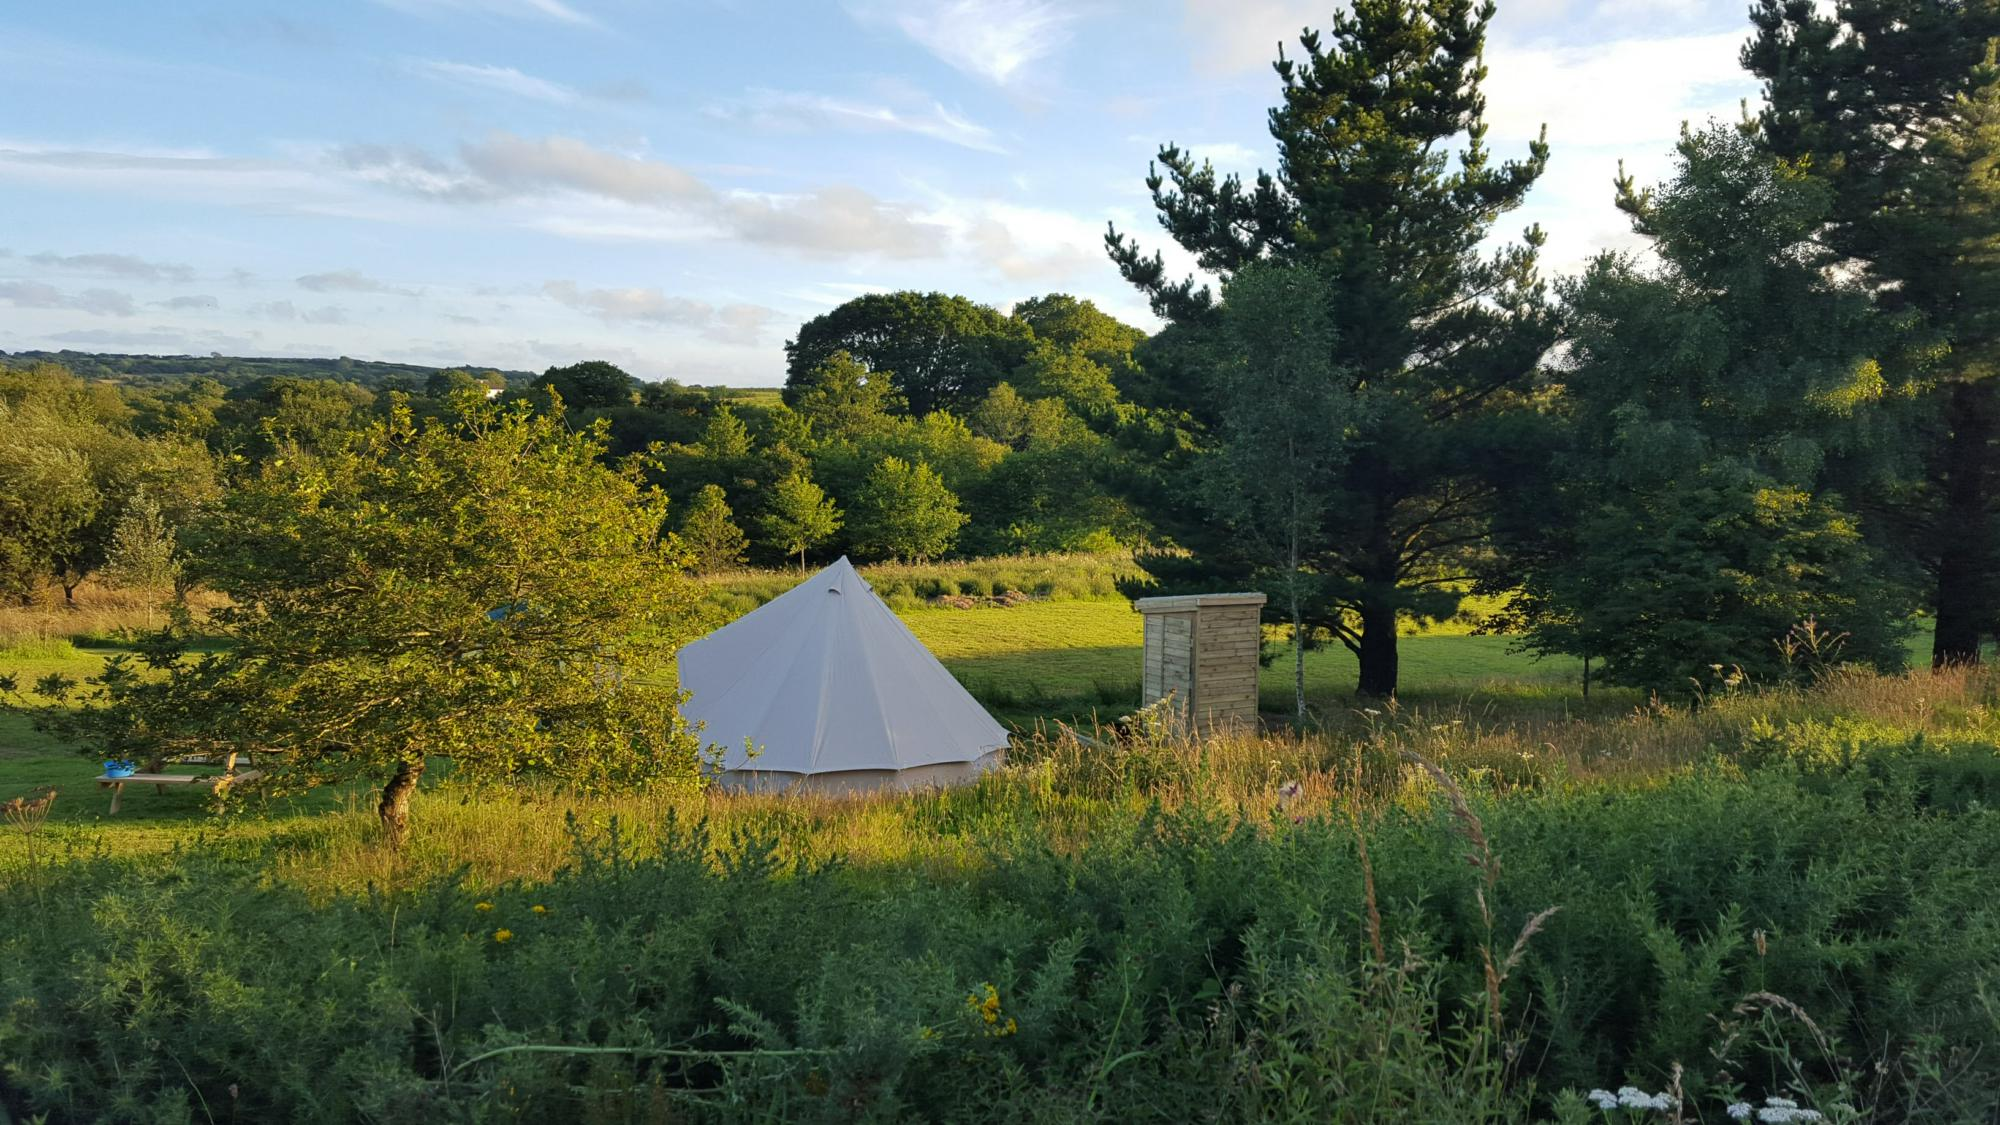 Glamping in UK – I Love This Campsite